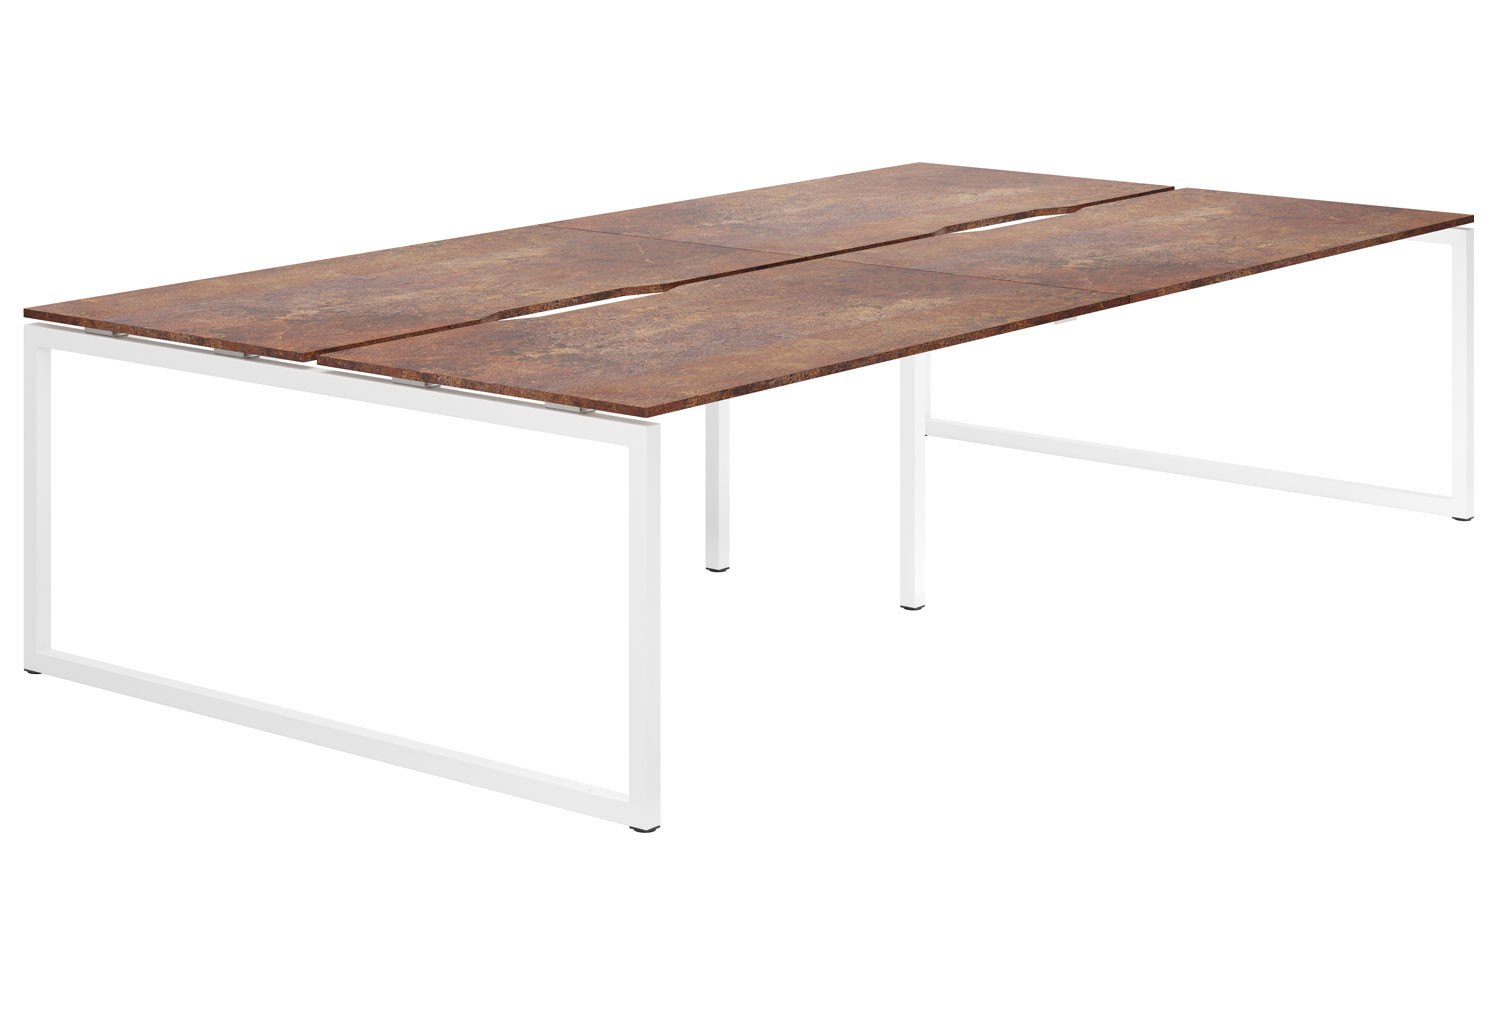 Lasso Hooped Leg 4 Person Back To Back Bench Desk (Rusted Steel)